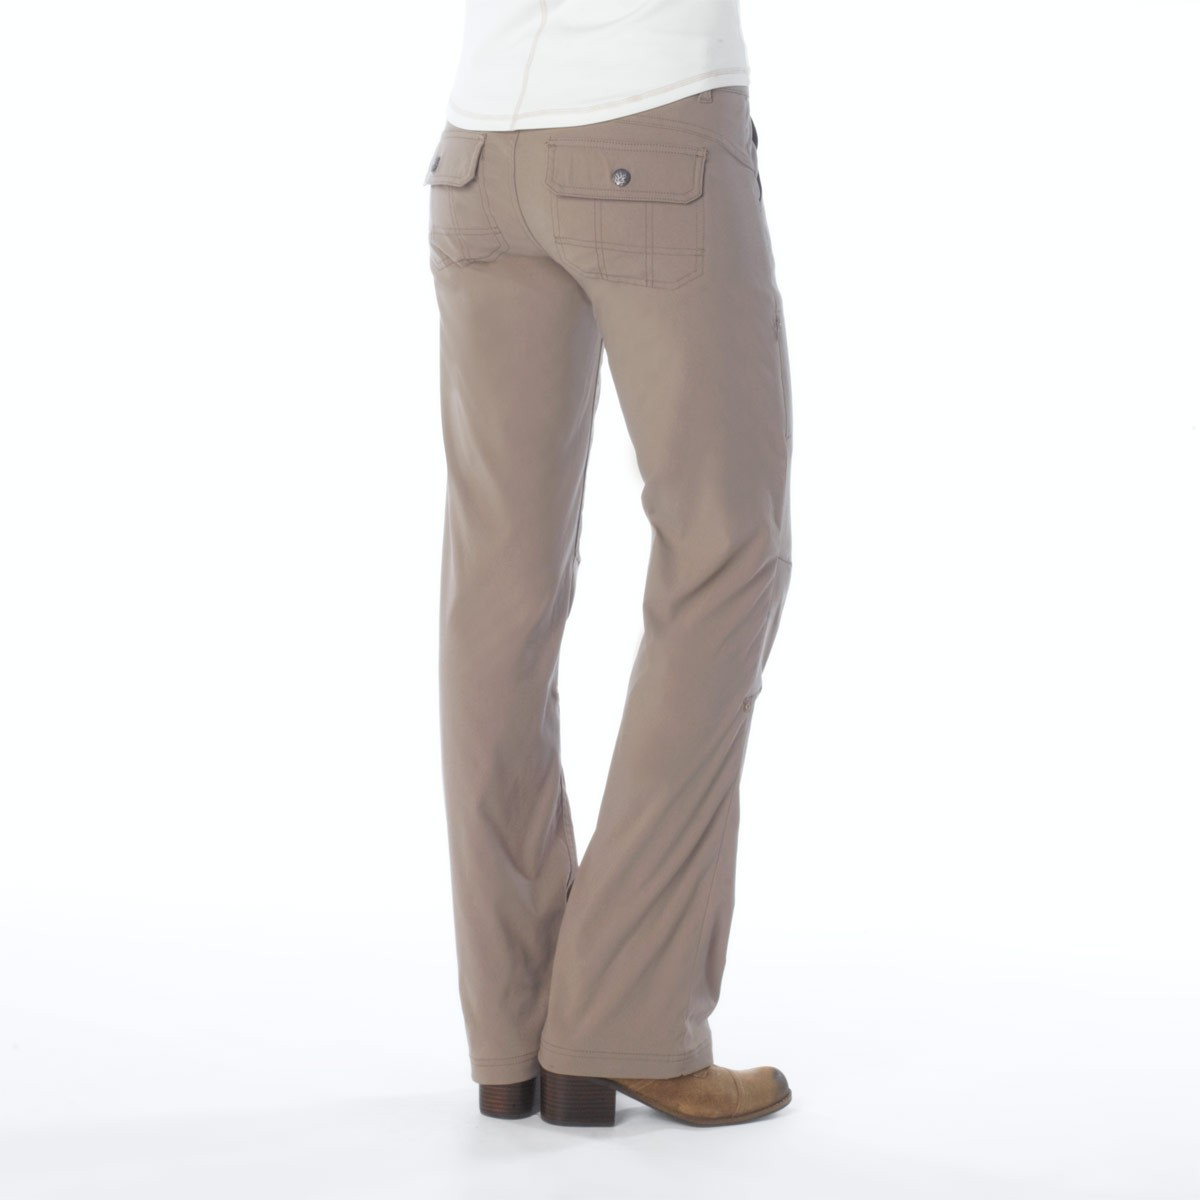 Perfect Dockers K1 Womens Size 6P Dark Brown Khaki Pants In Very, Very Good Condition Have Just Been Hanging In My Closet Since I Gained Weight Dog Friendly Home I Also Have Two Other Pairs Of Dockers In Similar Size For Sale